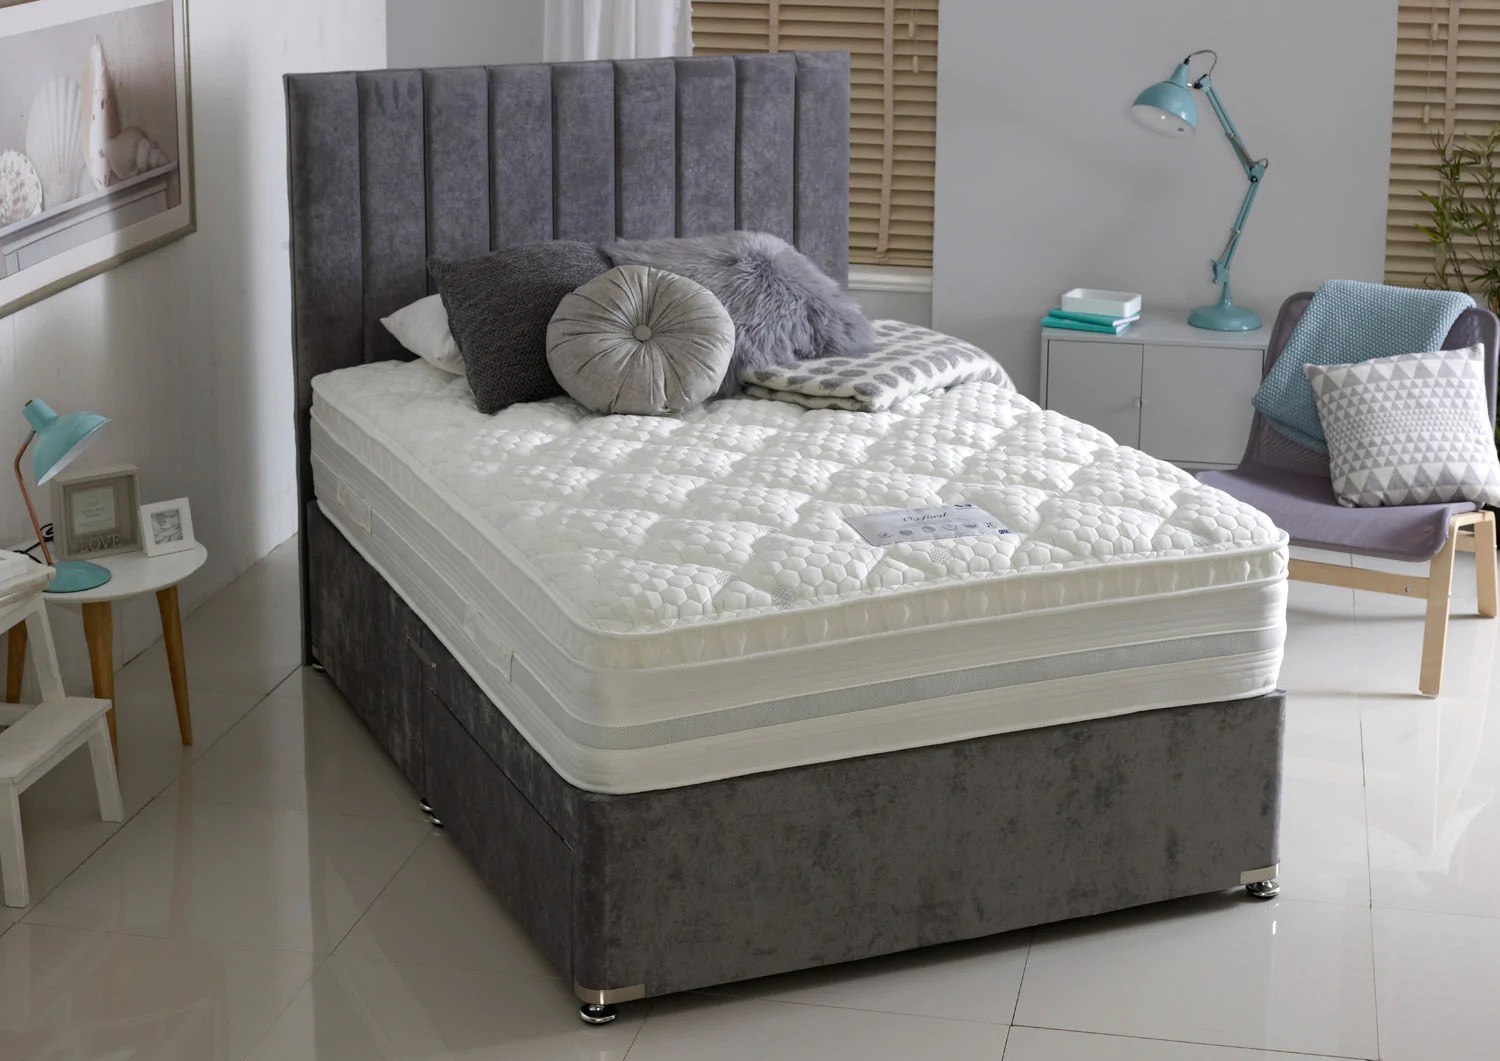 Dura Beds Mattress Oxford Pocket Sprung And Memory Foam Divan Bed Set